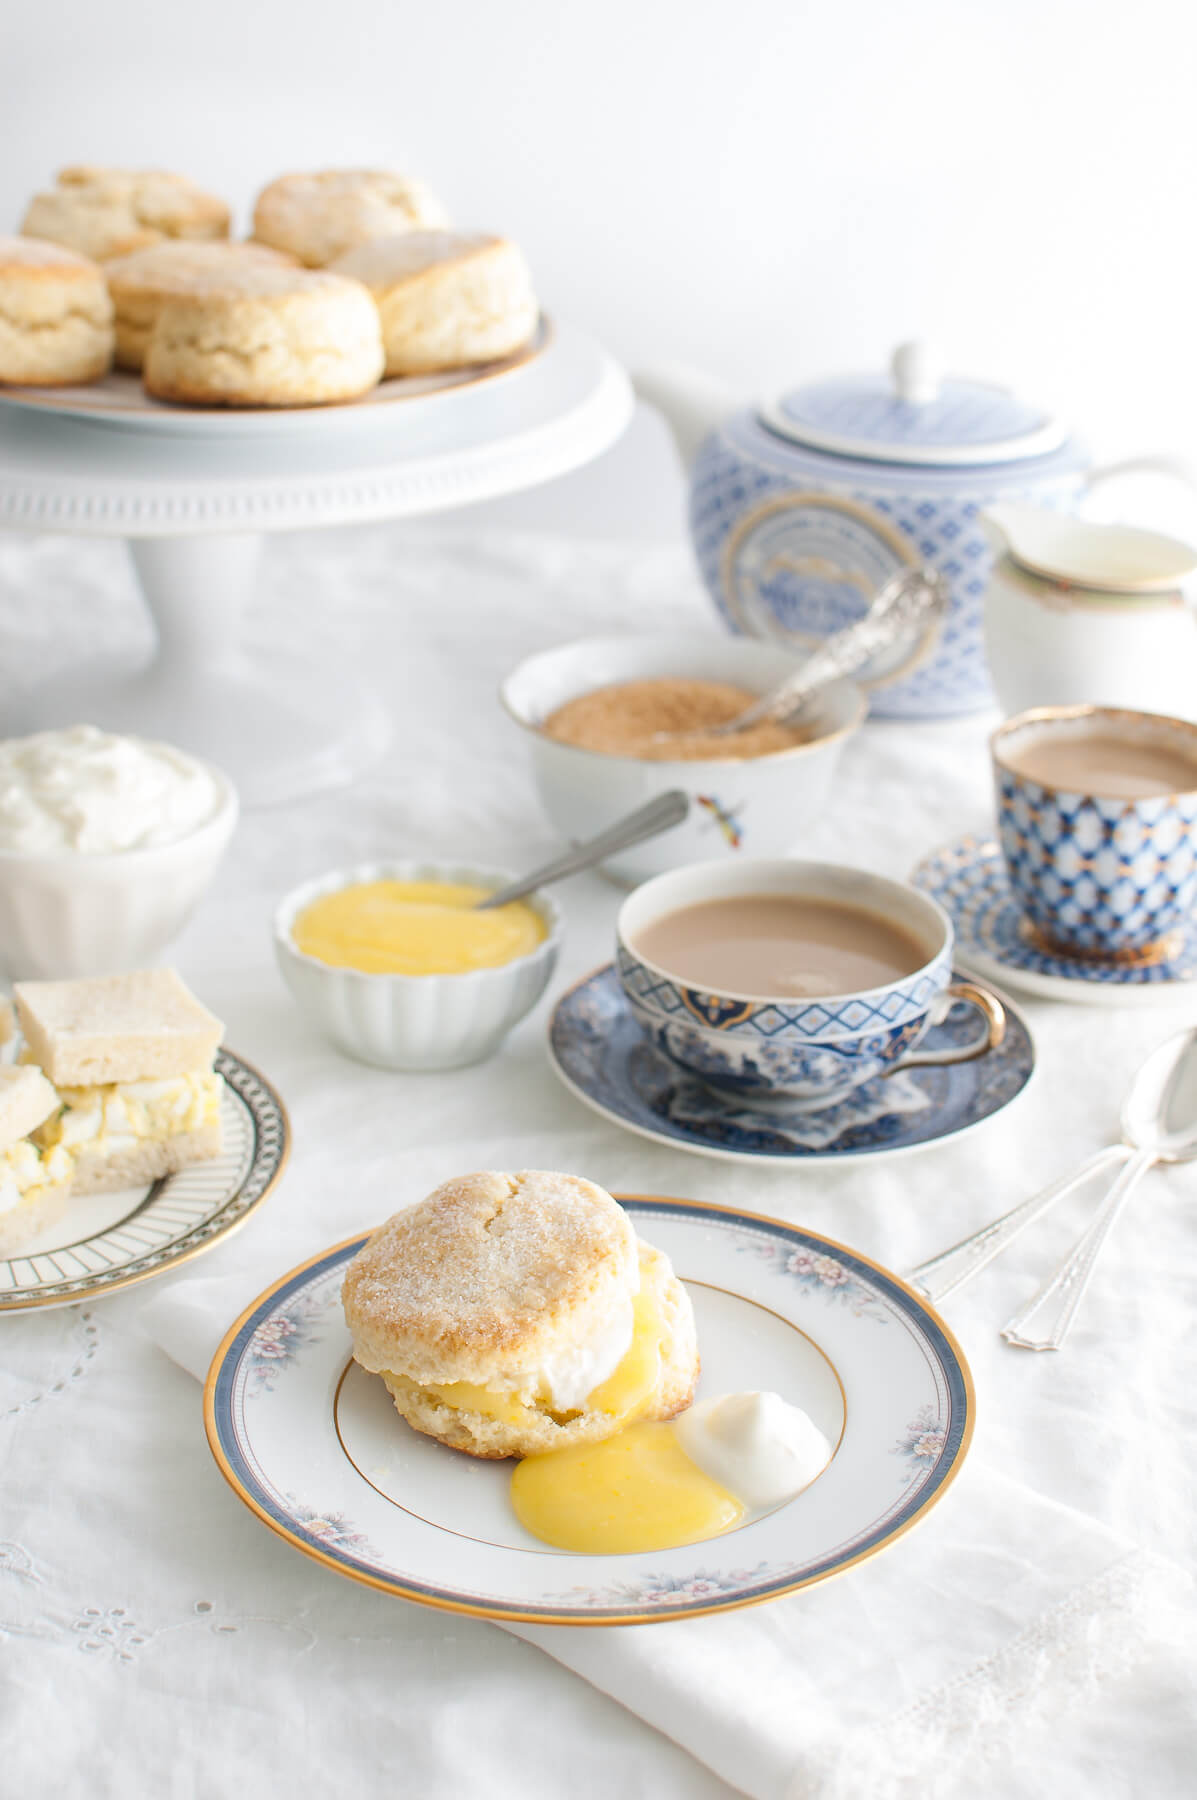 A table set for afternoon tea with scones, lemon curd, whipped cream, tea sandwiches, and cups of tea.